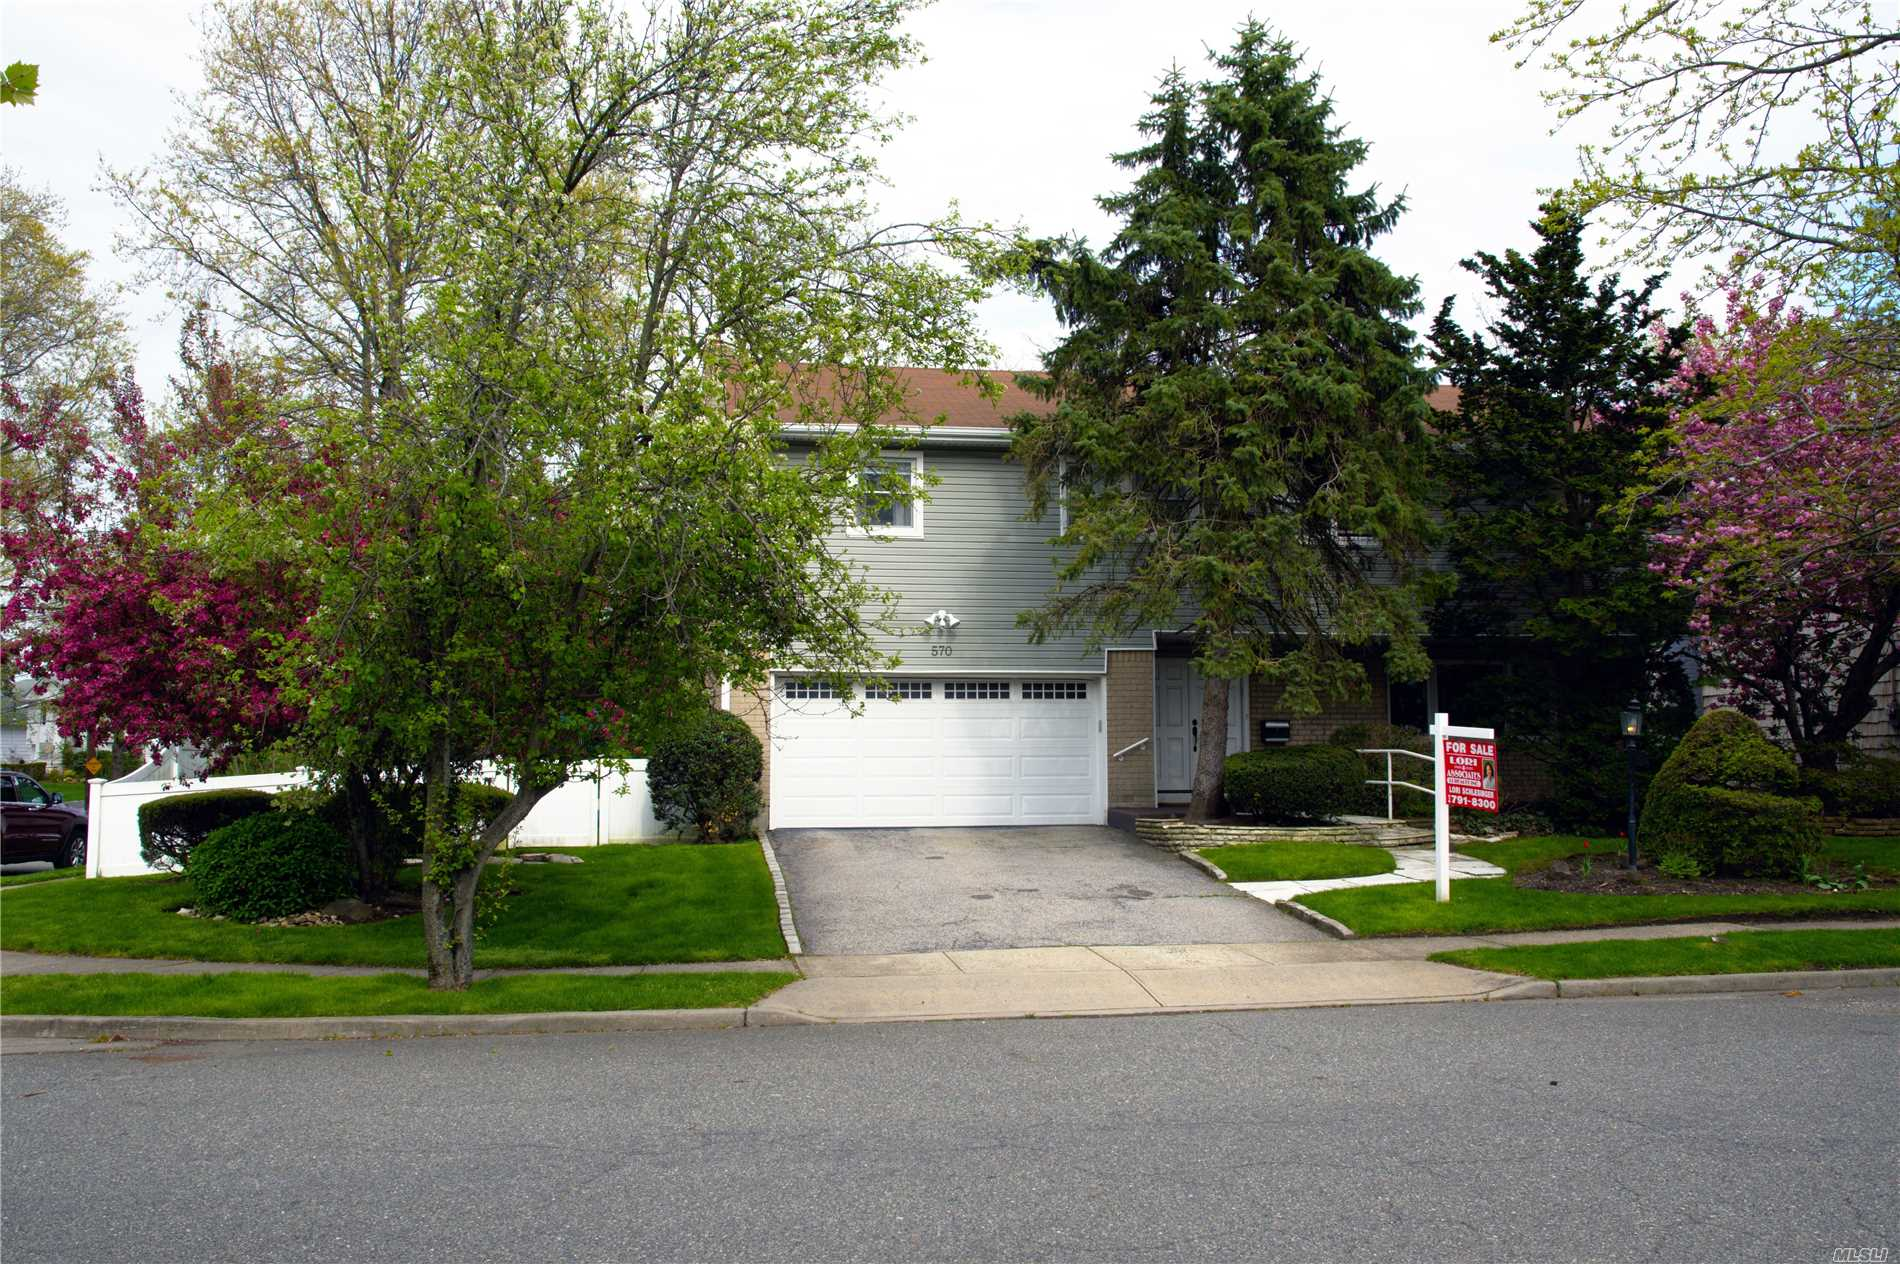 Open Concept Contemporary Colonial. 4+ Bedrooms On The 2nd Floor. New Kitchen And Bathrooms, Hardwood Floors (NEW), Central Air, Gas Heat, Over Sized Corner Property With A Back & Side Yard (Deck & Jacuzzi)Finished Basement.